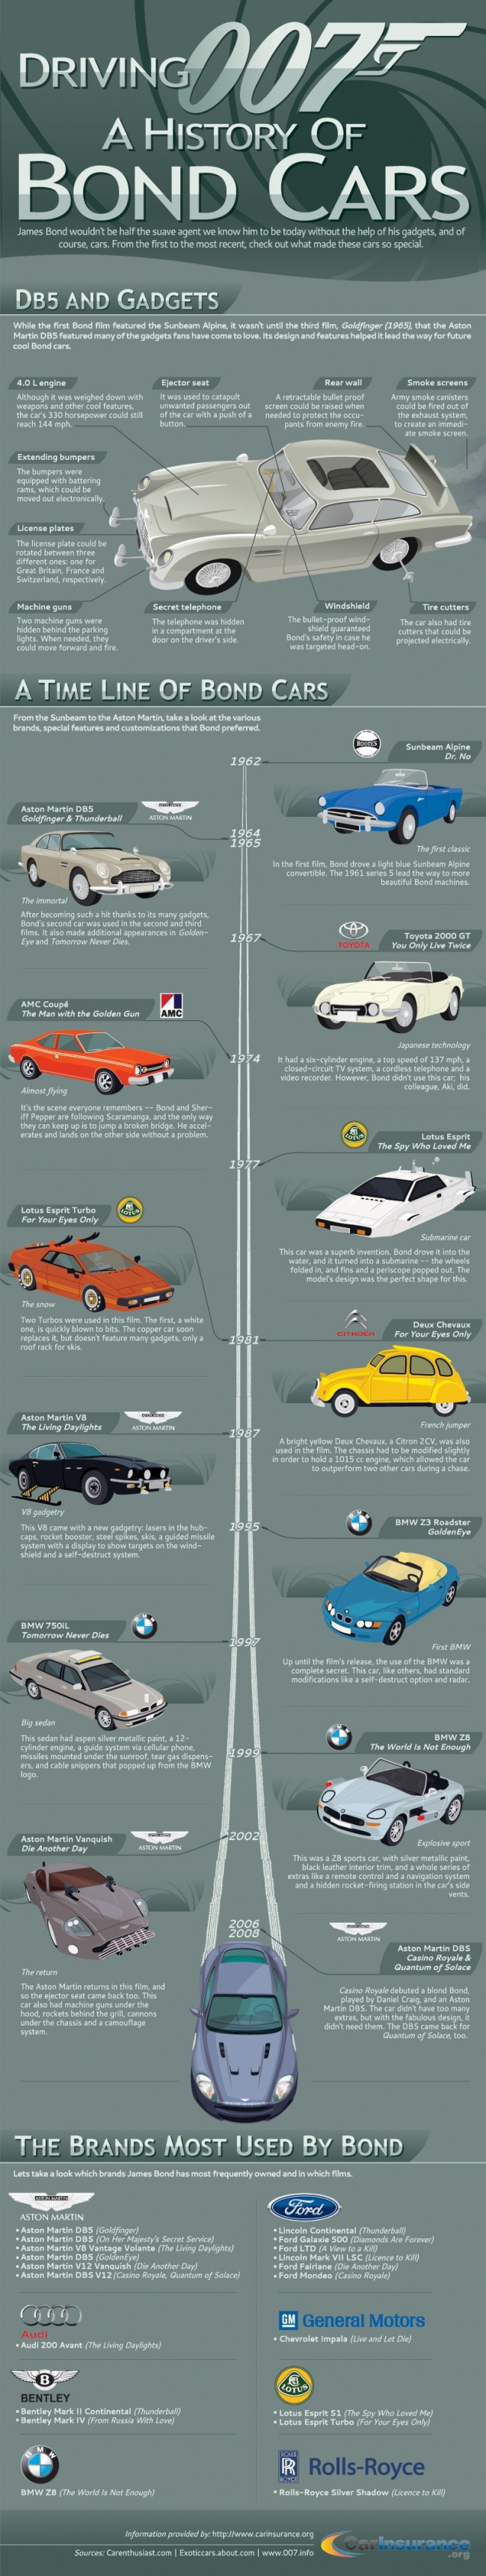 small_a_history_of_james_bonds_cars.jpg